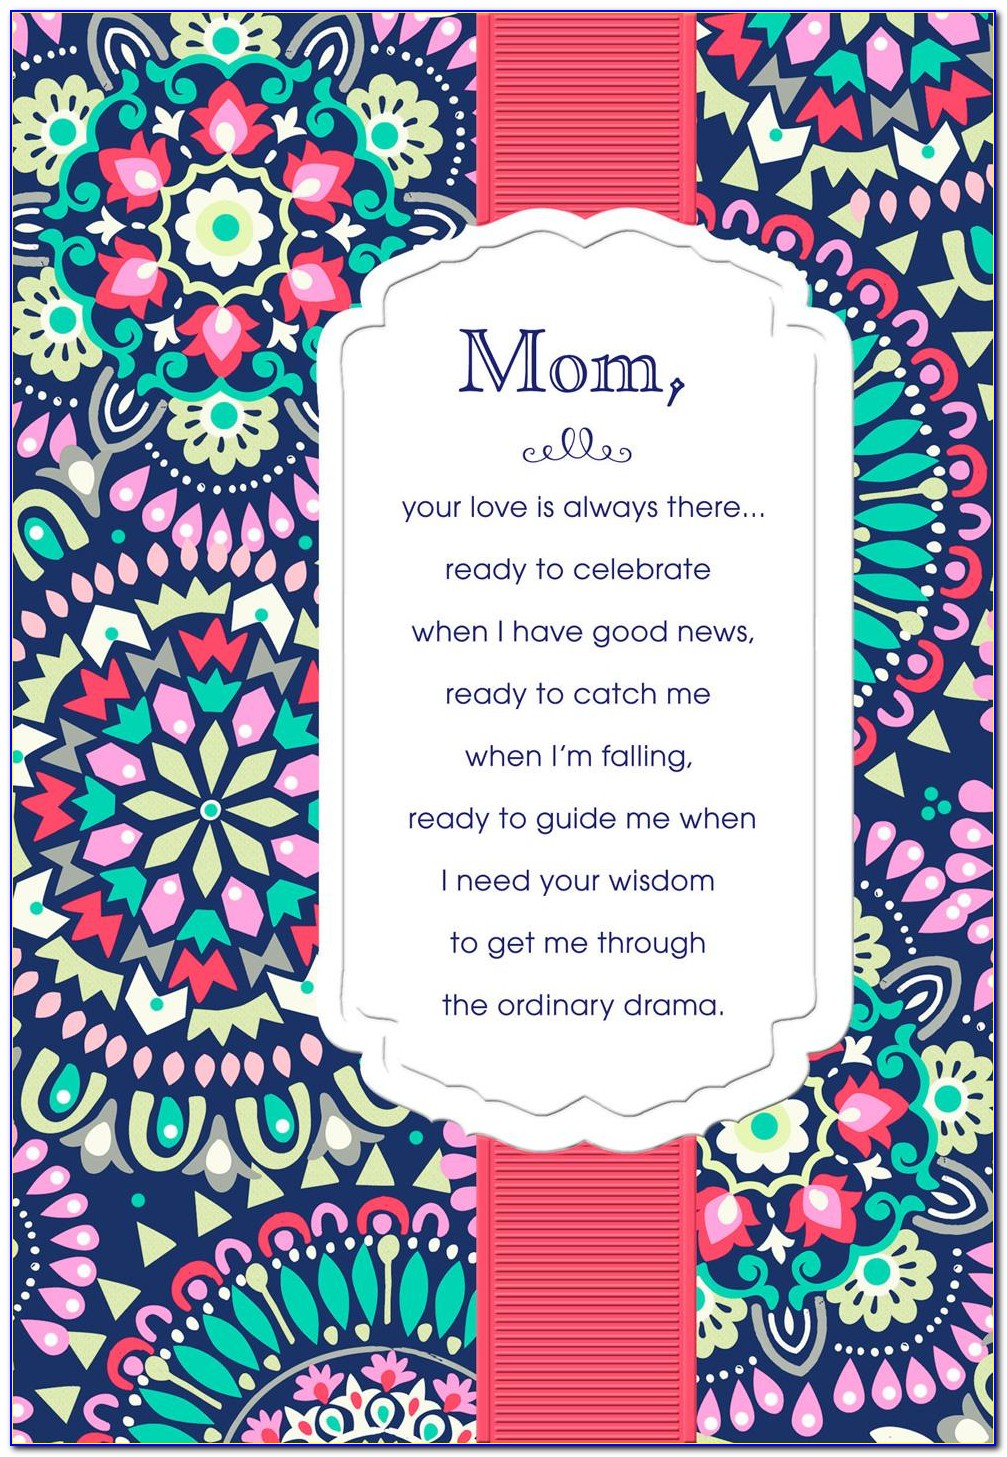 Birthday Ecards For Mom From Daughter